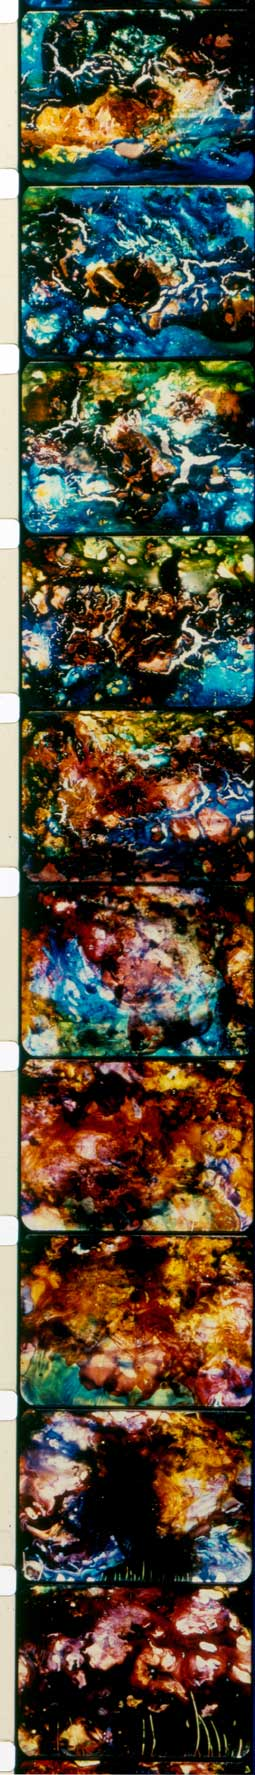 brakhage-film-scan-existence-is-song